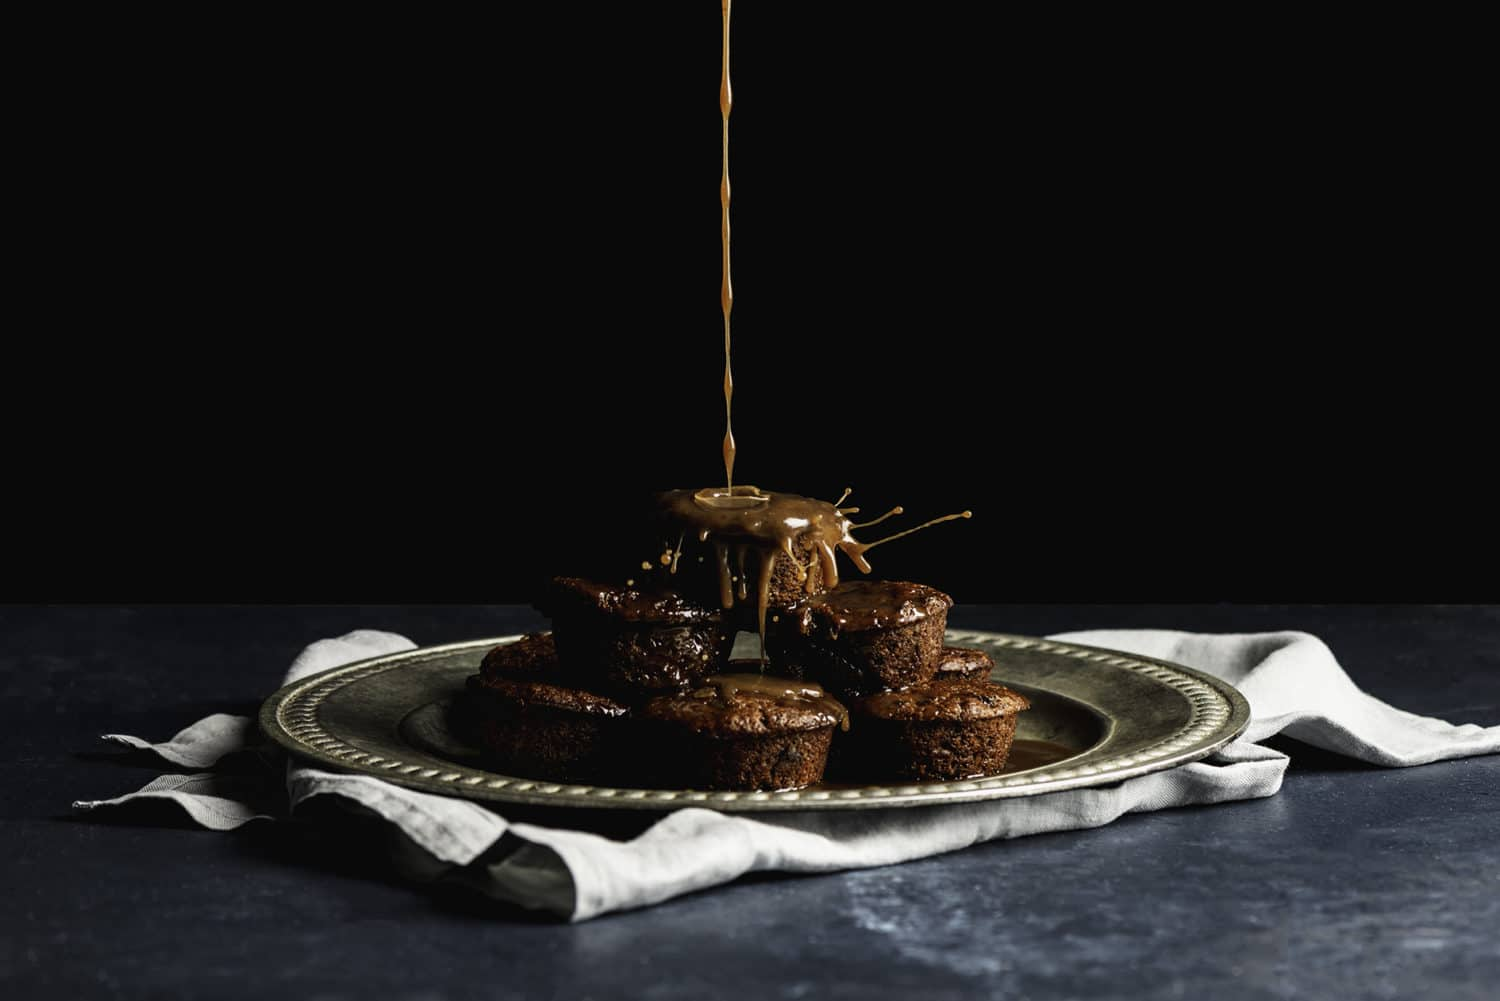 chai date muffins being drizzled with caramel sauce